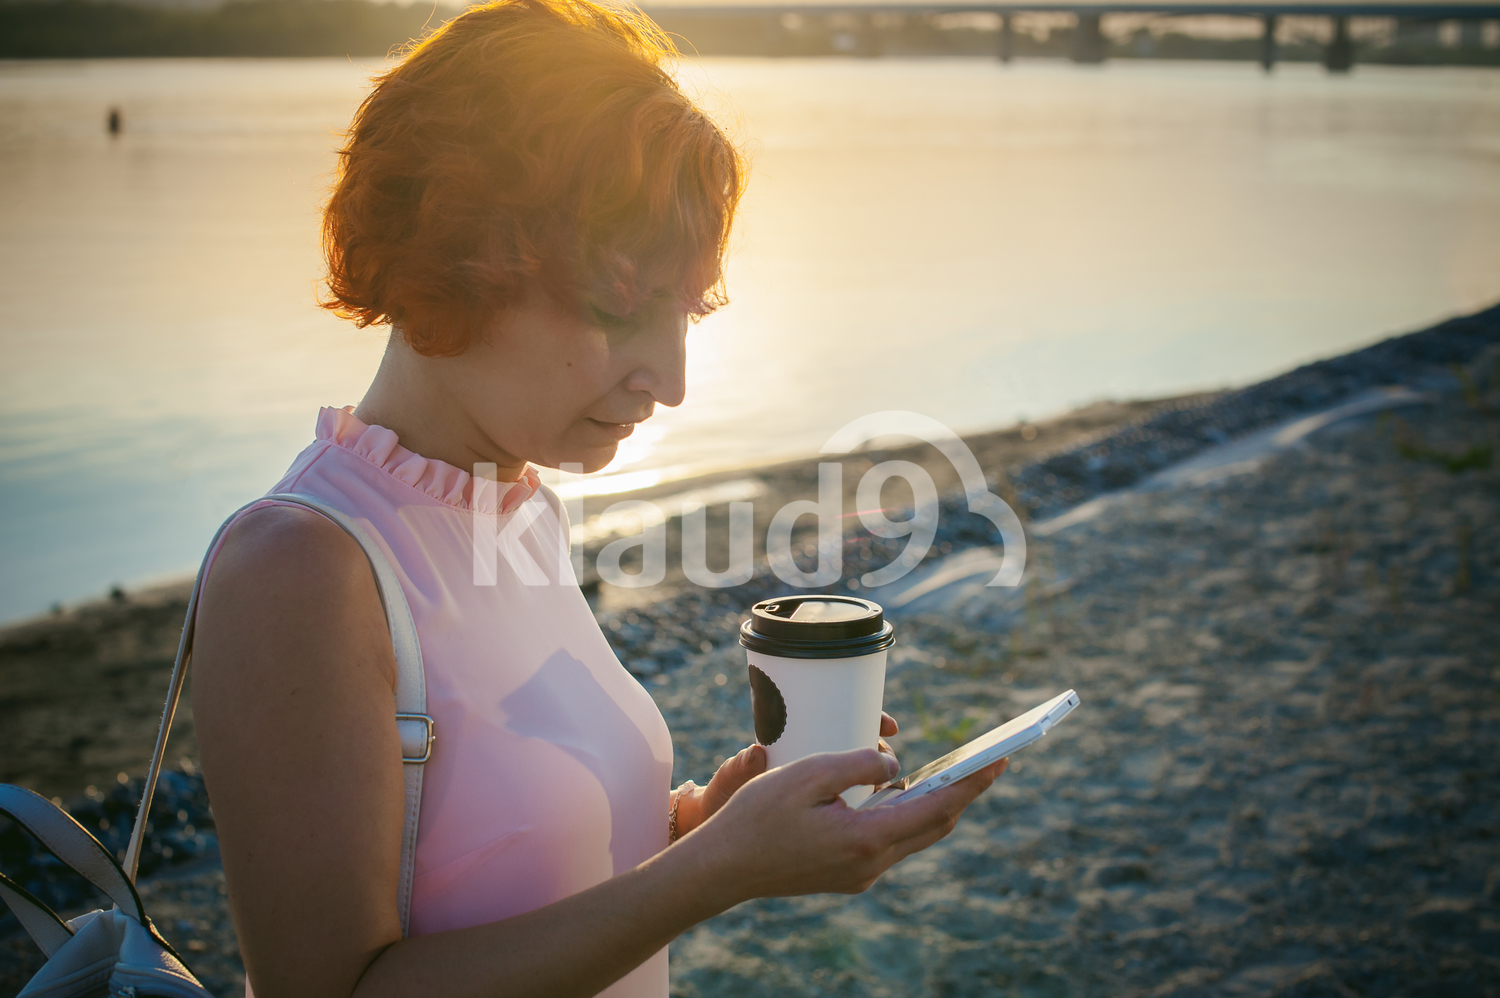 Female with red hair texting on her cell phone